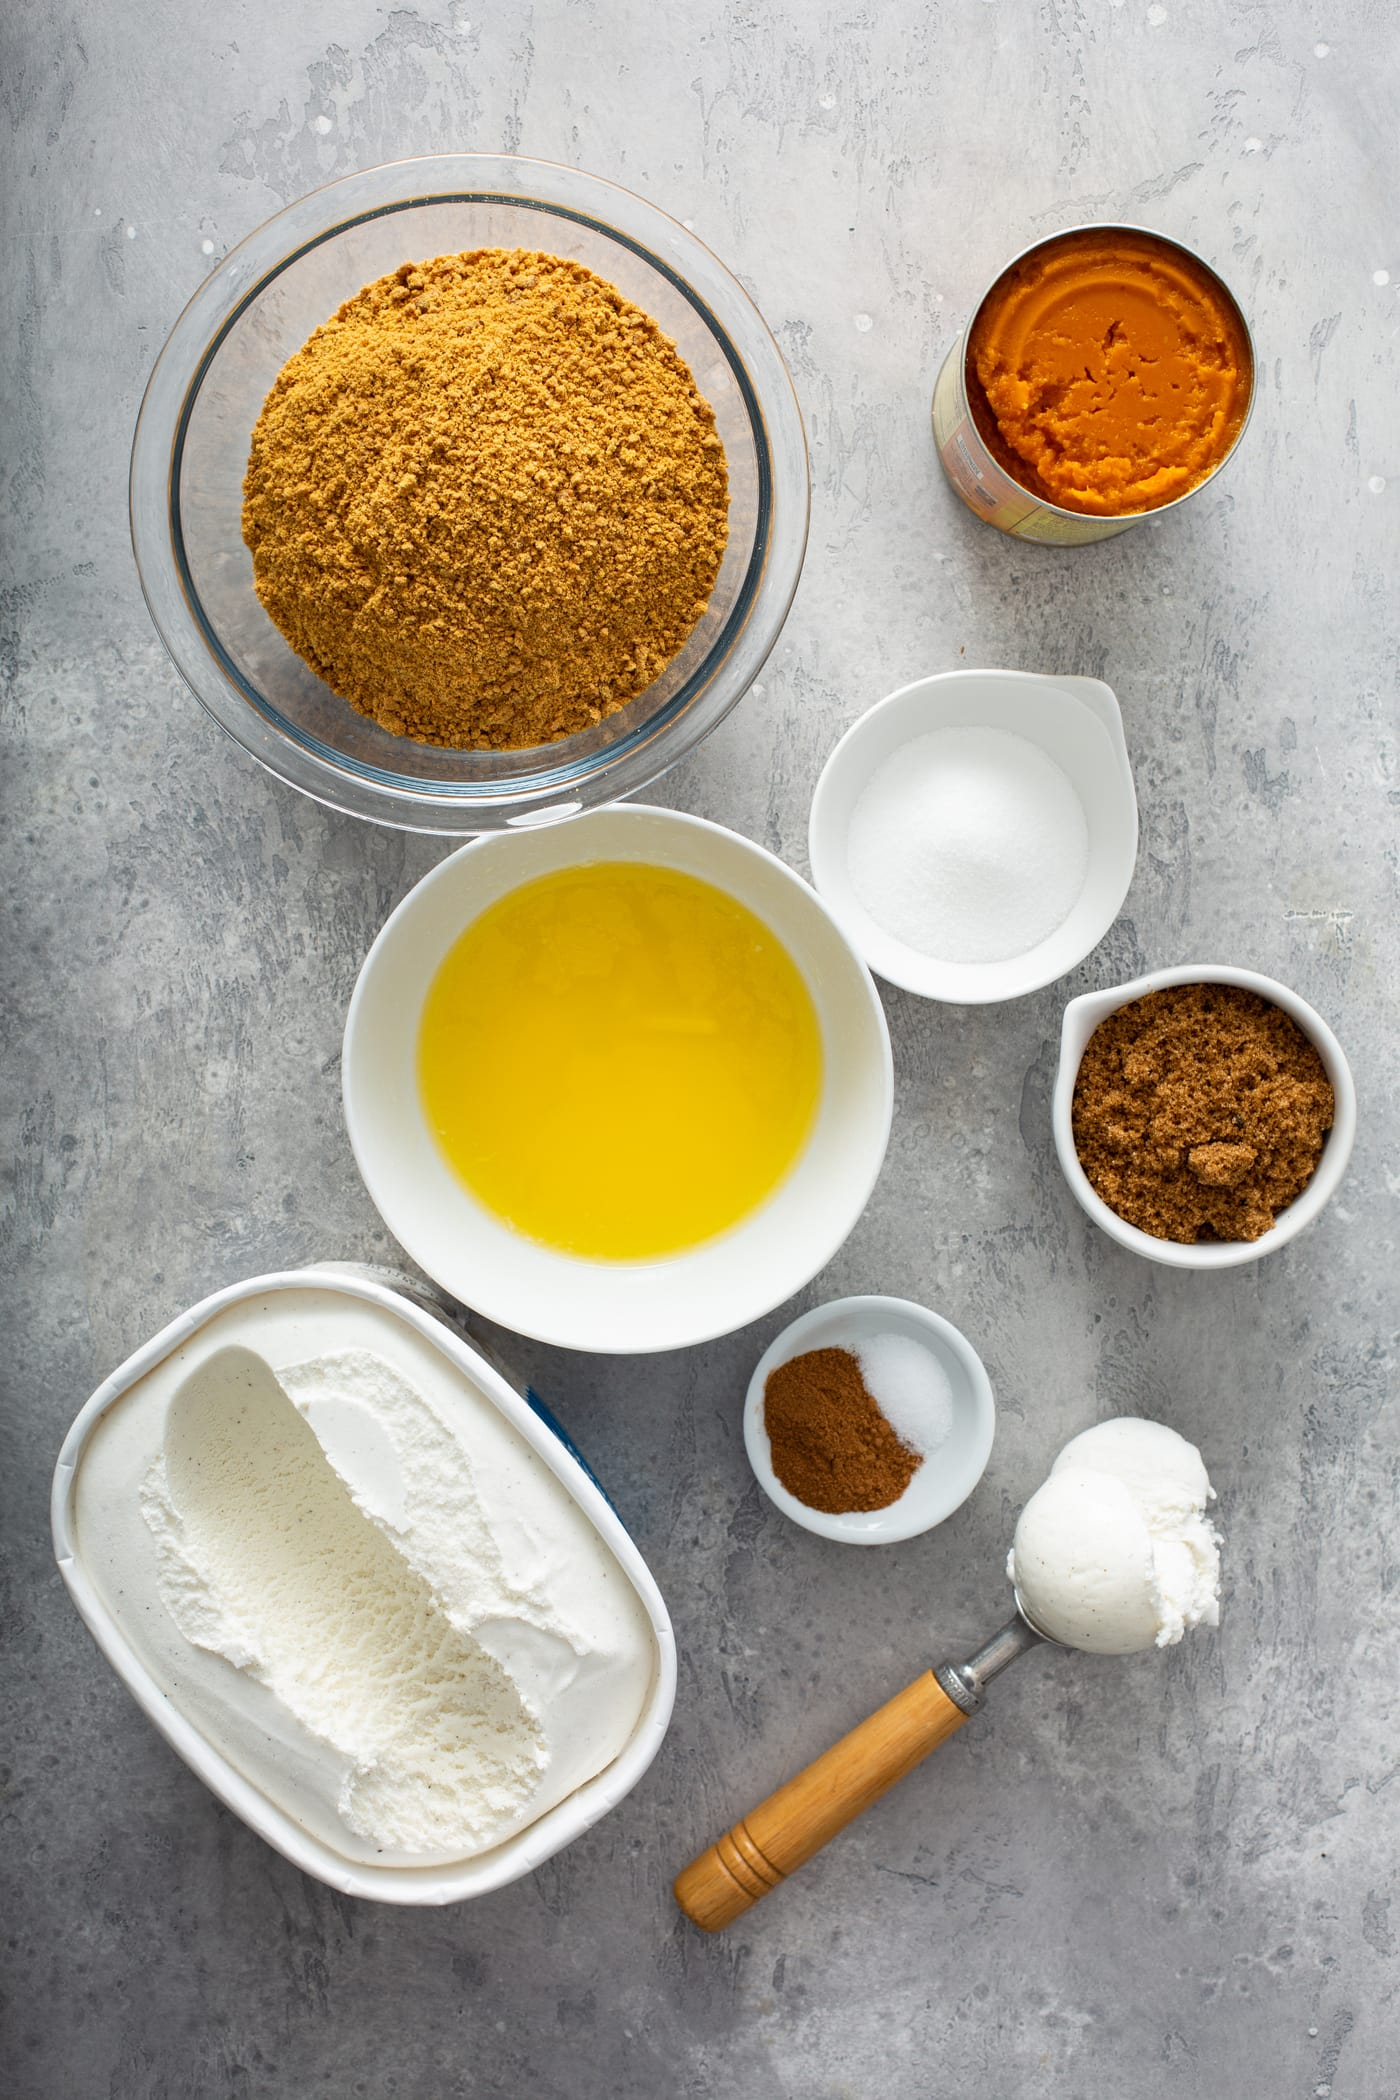 Small containers of ingredients for pumpkin ice cream pie. There are containers of pumpkin, gingersnap crumbs, butter, spices, sugar, brown sugar, and vanilla ice cream.